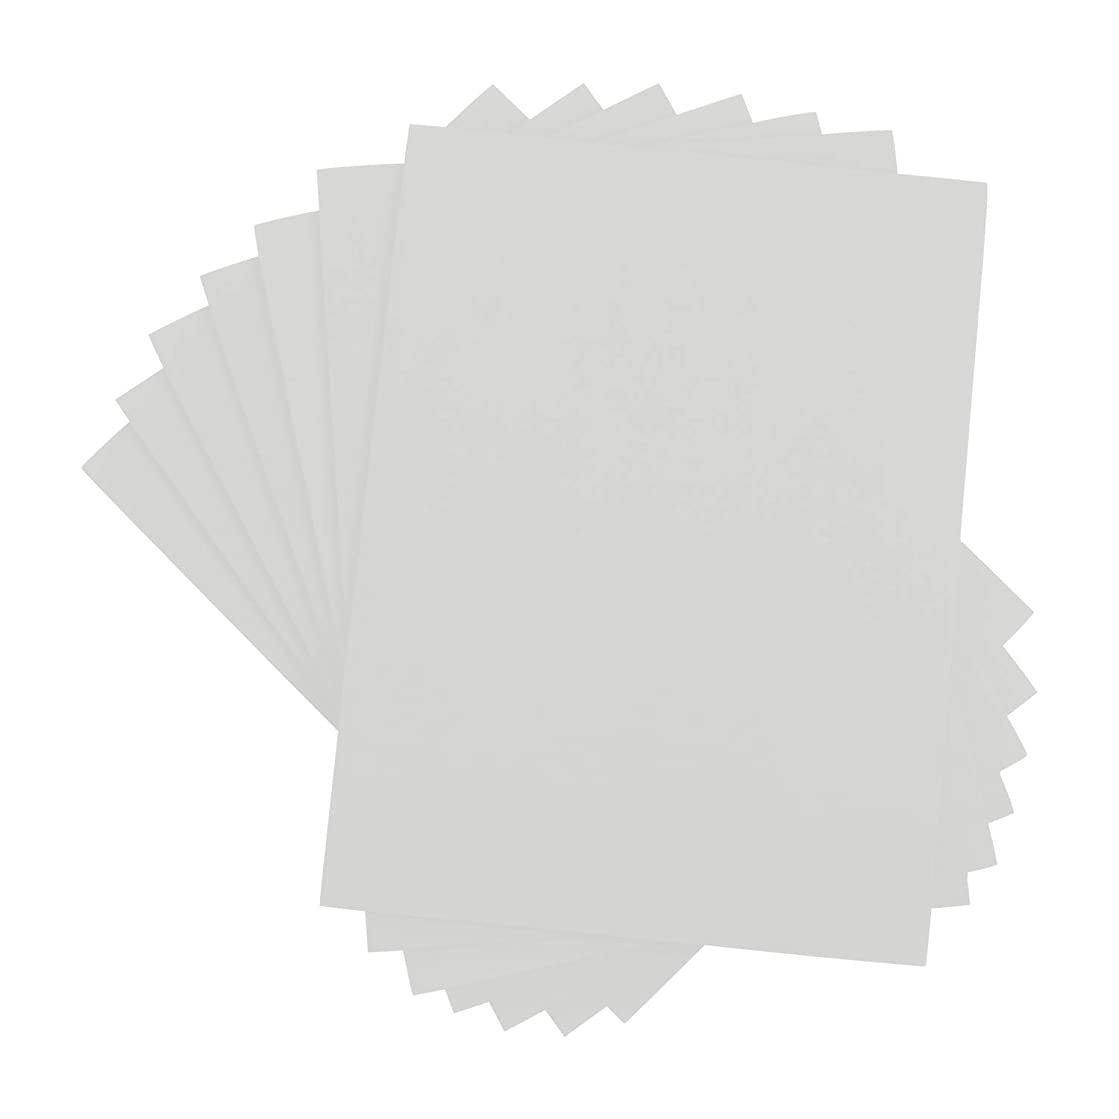 Houseables Crafts Foam Sheets, Art Supplies, 6mm Thick, White, 9 X 12 Inch, 10 Pack, Paper Scrapbooking, Cosplay, Crafting Foams Paper, Styrofoam, Foamie, for Kids, Boy Scouts, Halloween, Cushion